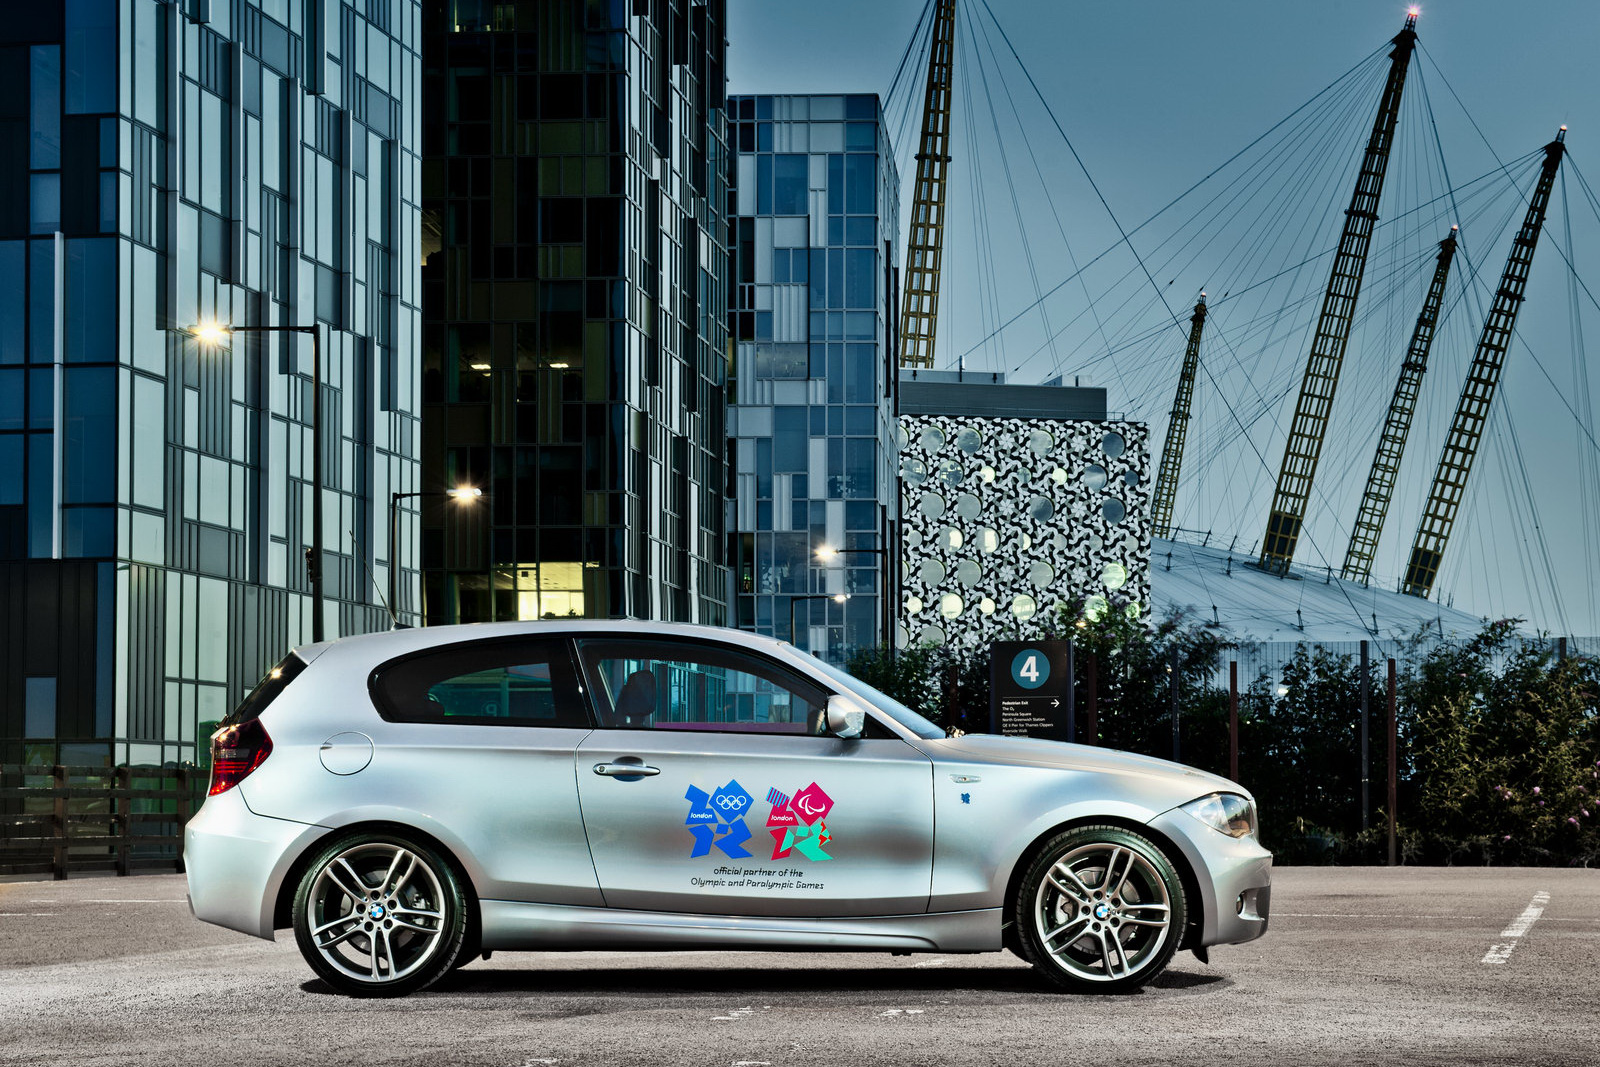 2012 Bmw London Olympics Edition All About Super 1 Series Special Editions - Medium